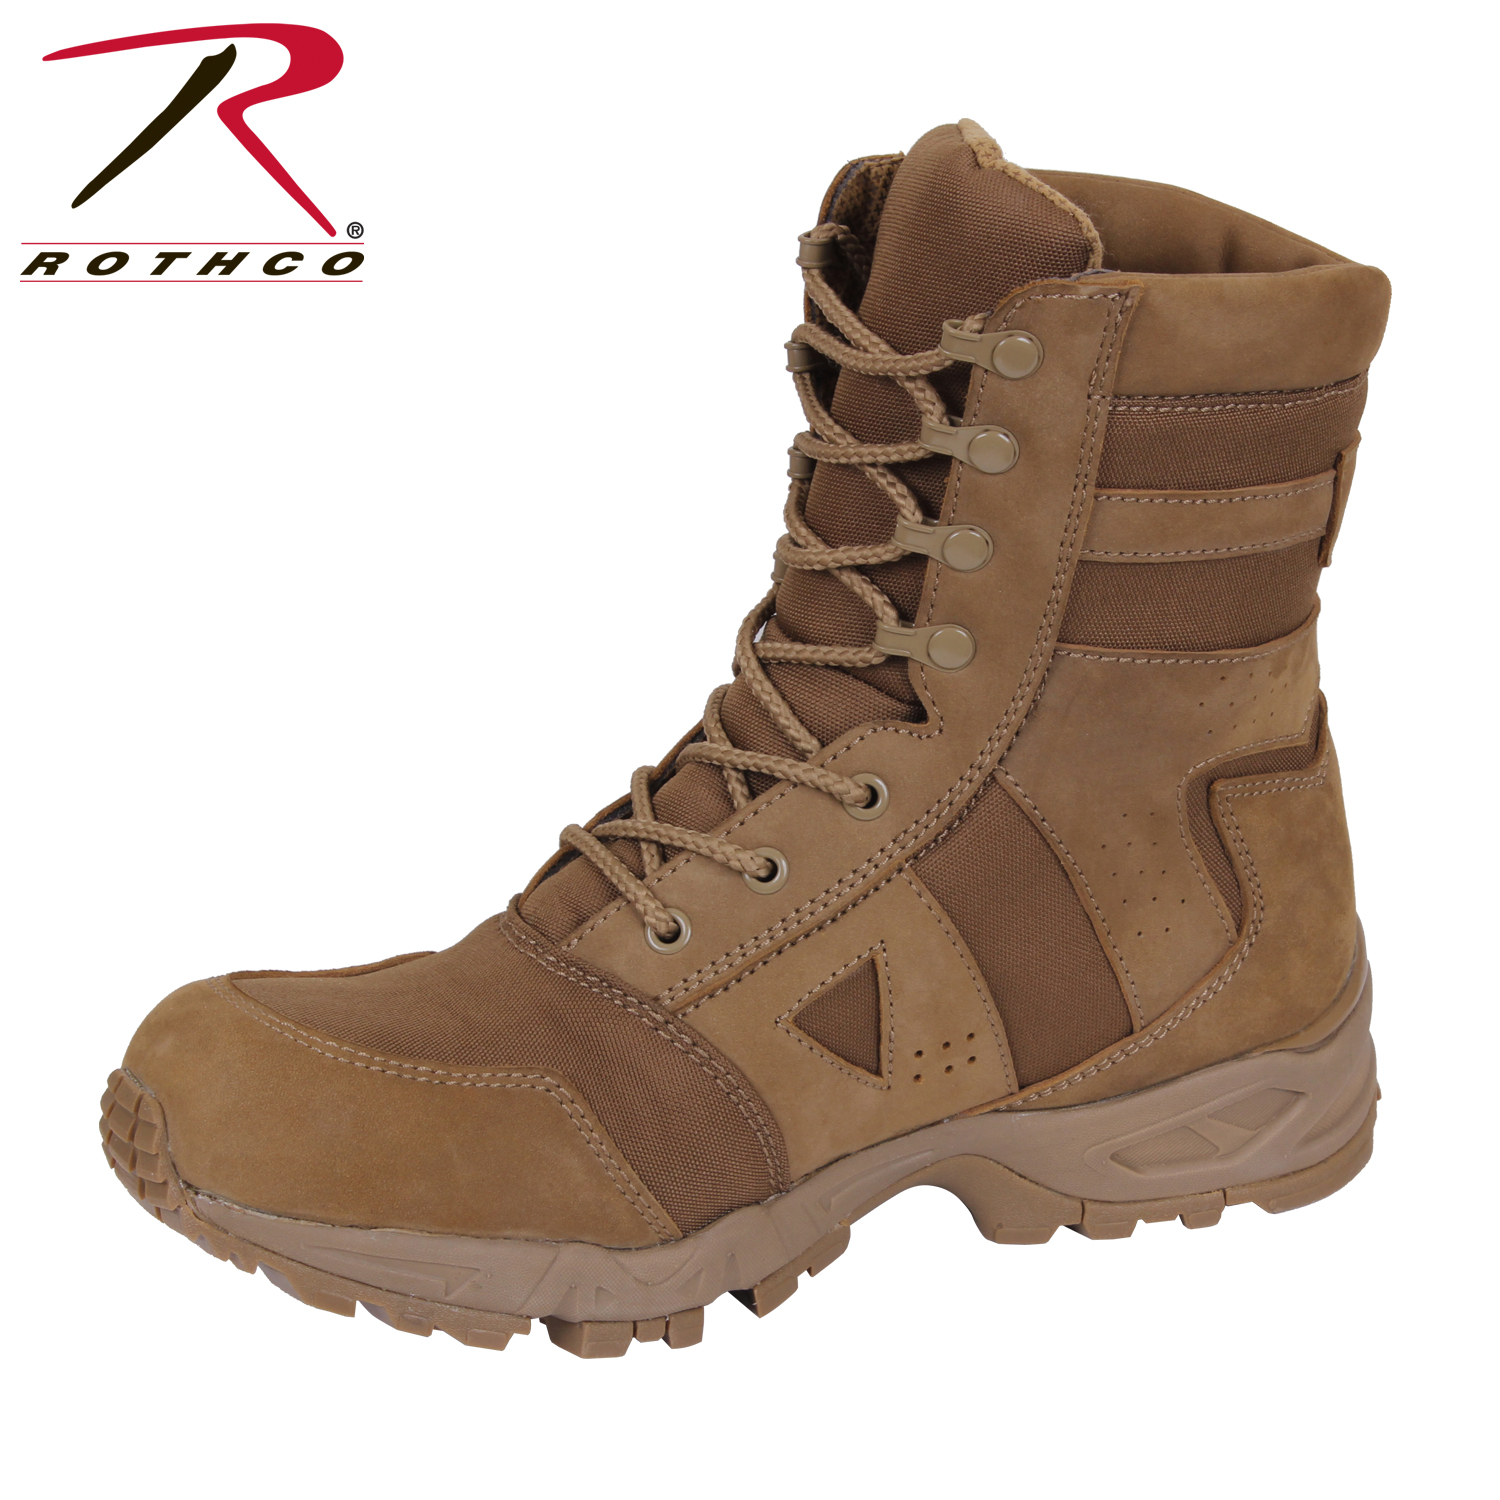 Rothco Ar 670 1 Coyote Forced Entry Tactical Boot